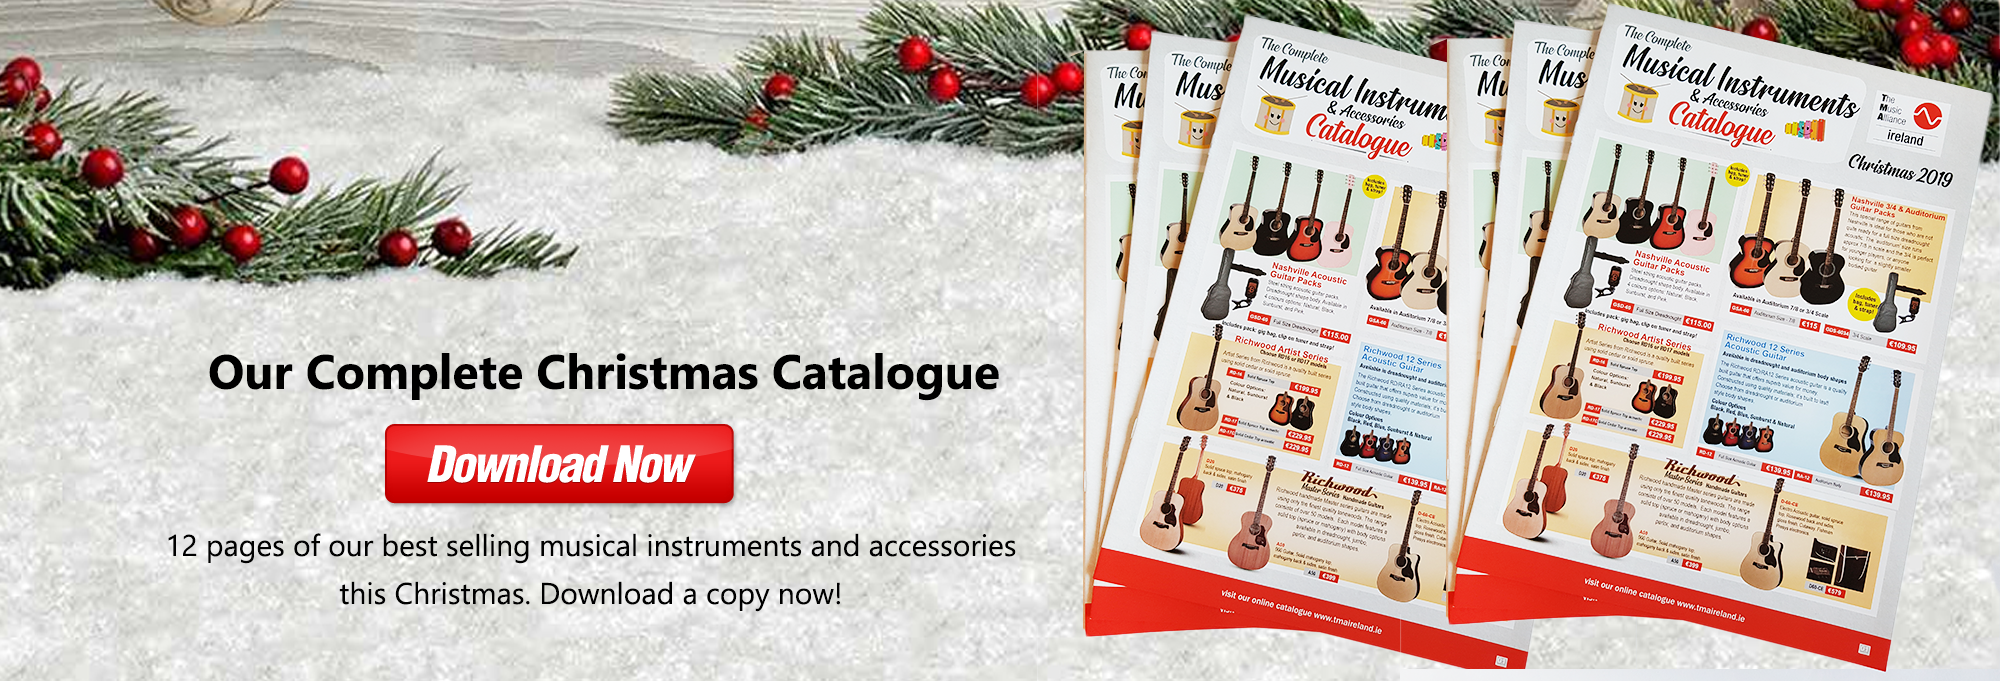 Christmas 2019 Catalogue - DOWNLOAD NOW